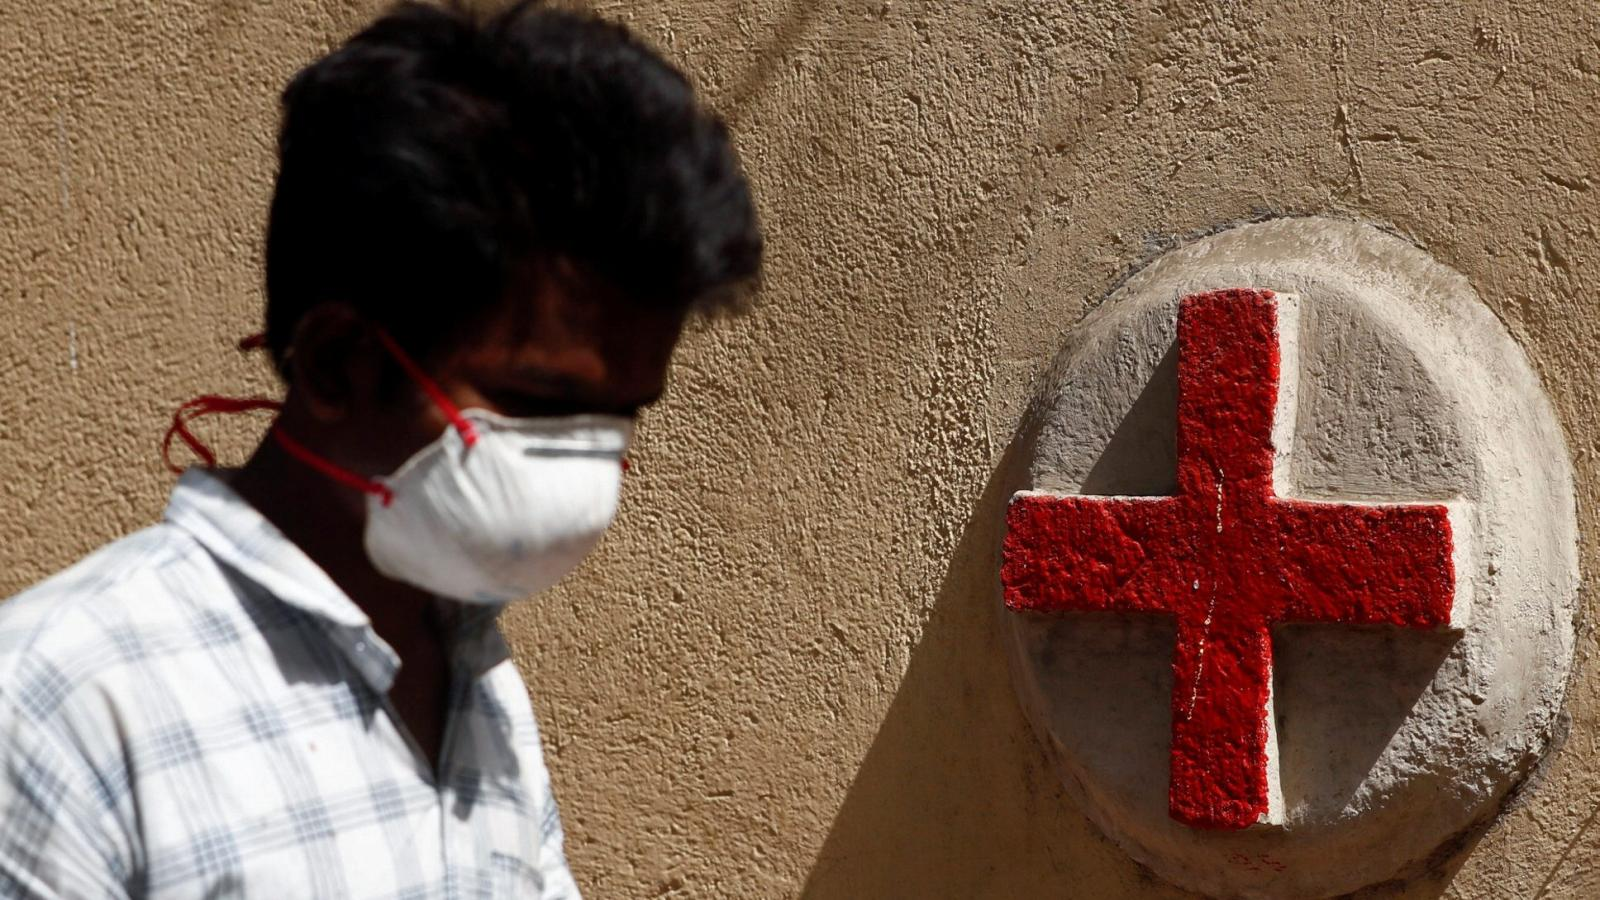 India increases coronavirus testing facilities as cases rise ...